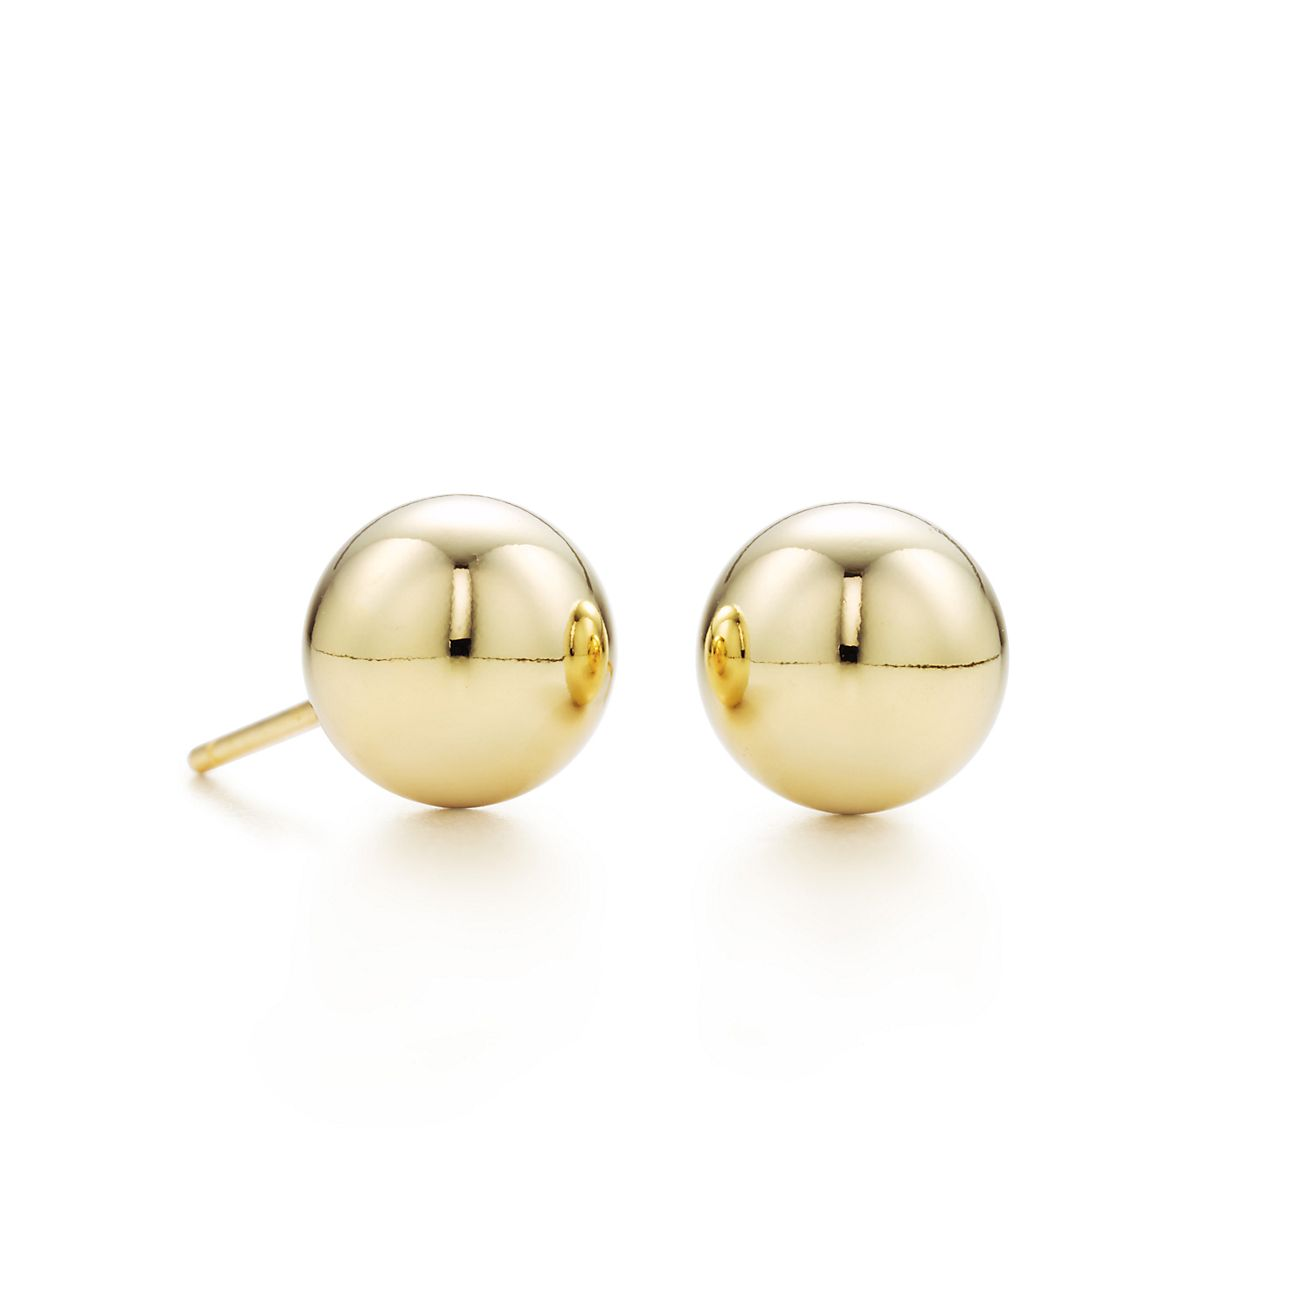 bead co ed stud fit fmt ball earrings constrain wid gold collections tiffany hei hardwear id in